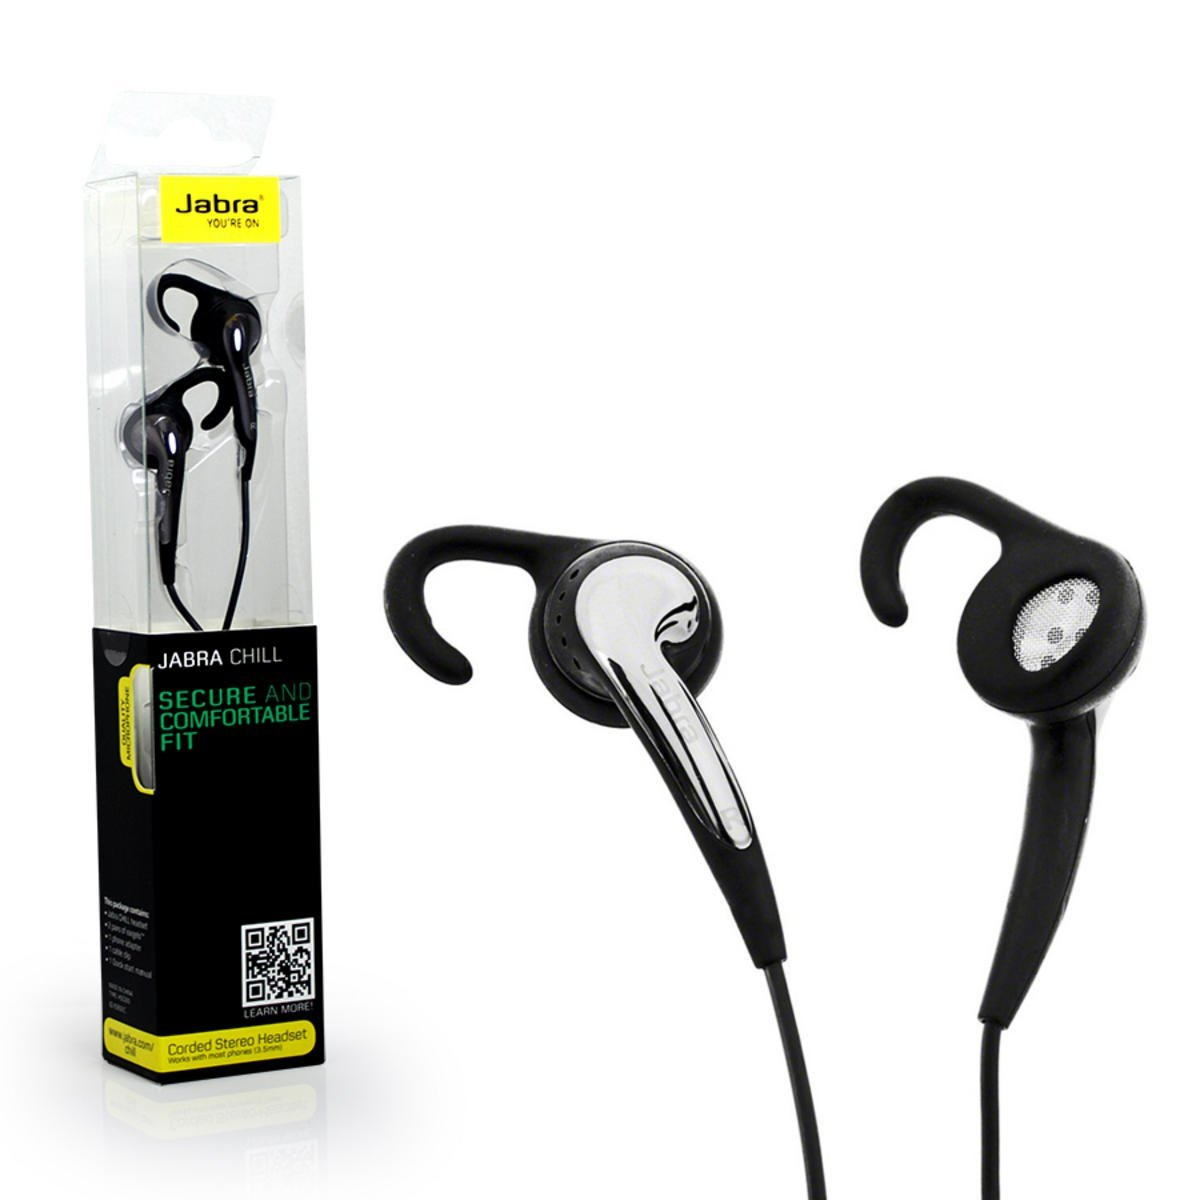 Upto 70% off On Headphones By Amazon | Jabra Chill Corded Stereo Headset (Black) @ Rs.399